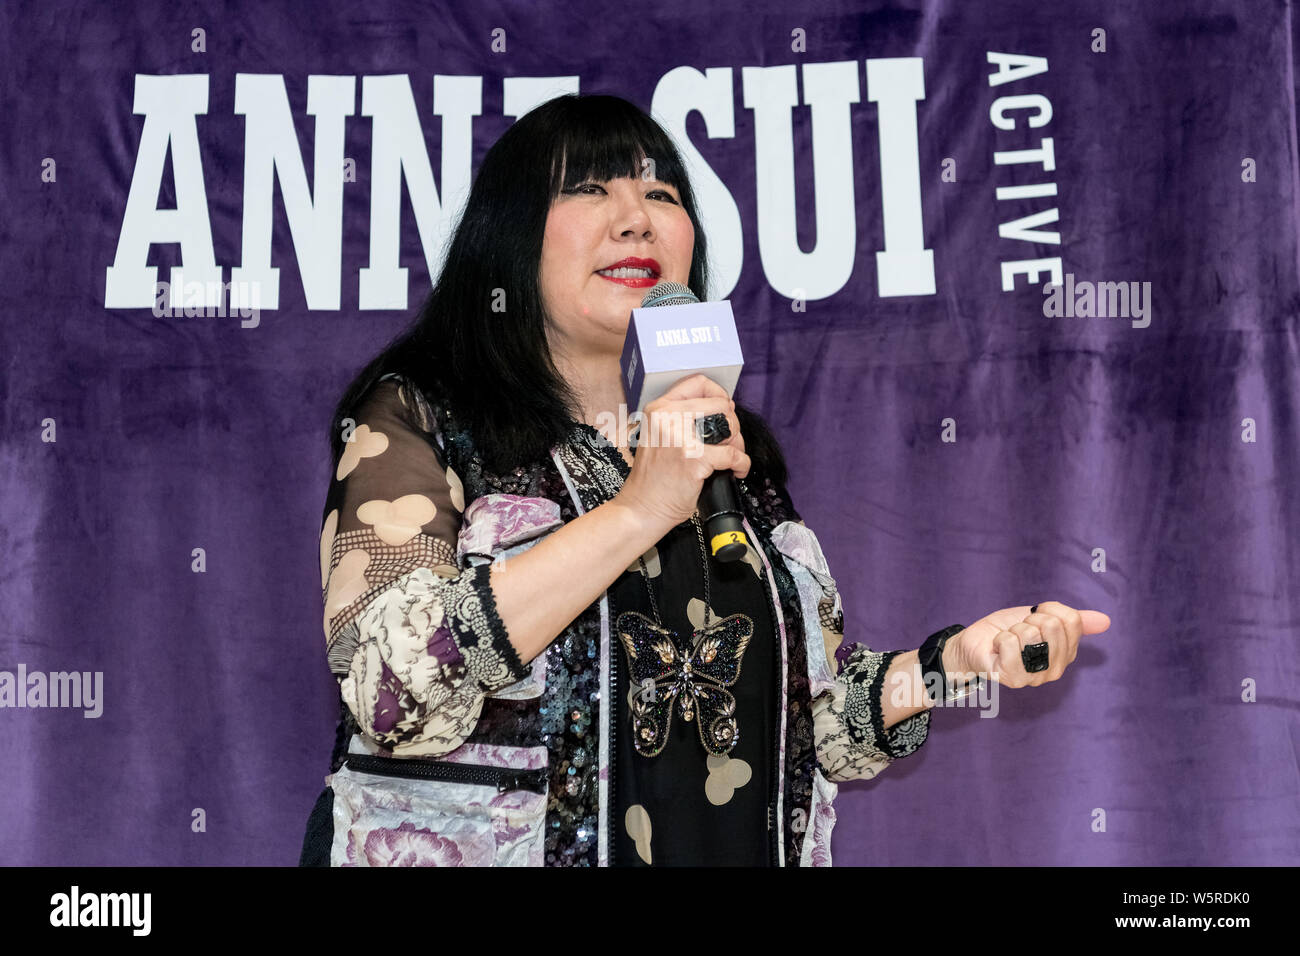 American fashion designer Anna Sui attends the opening ceremony for Anna Sui Active Grand in Shanghai, China, 26 June 2019. Stock Photo